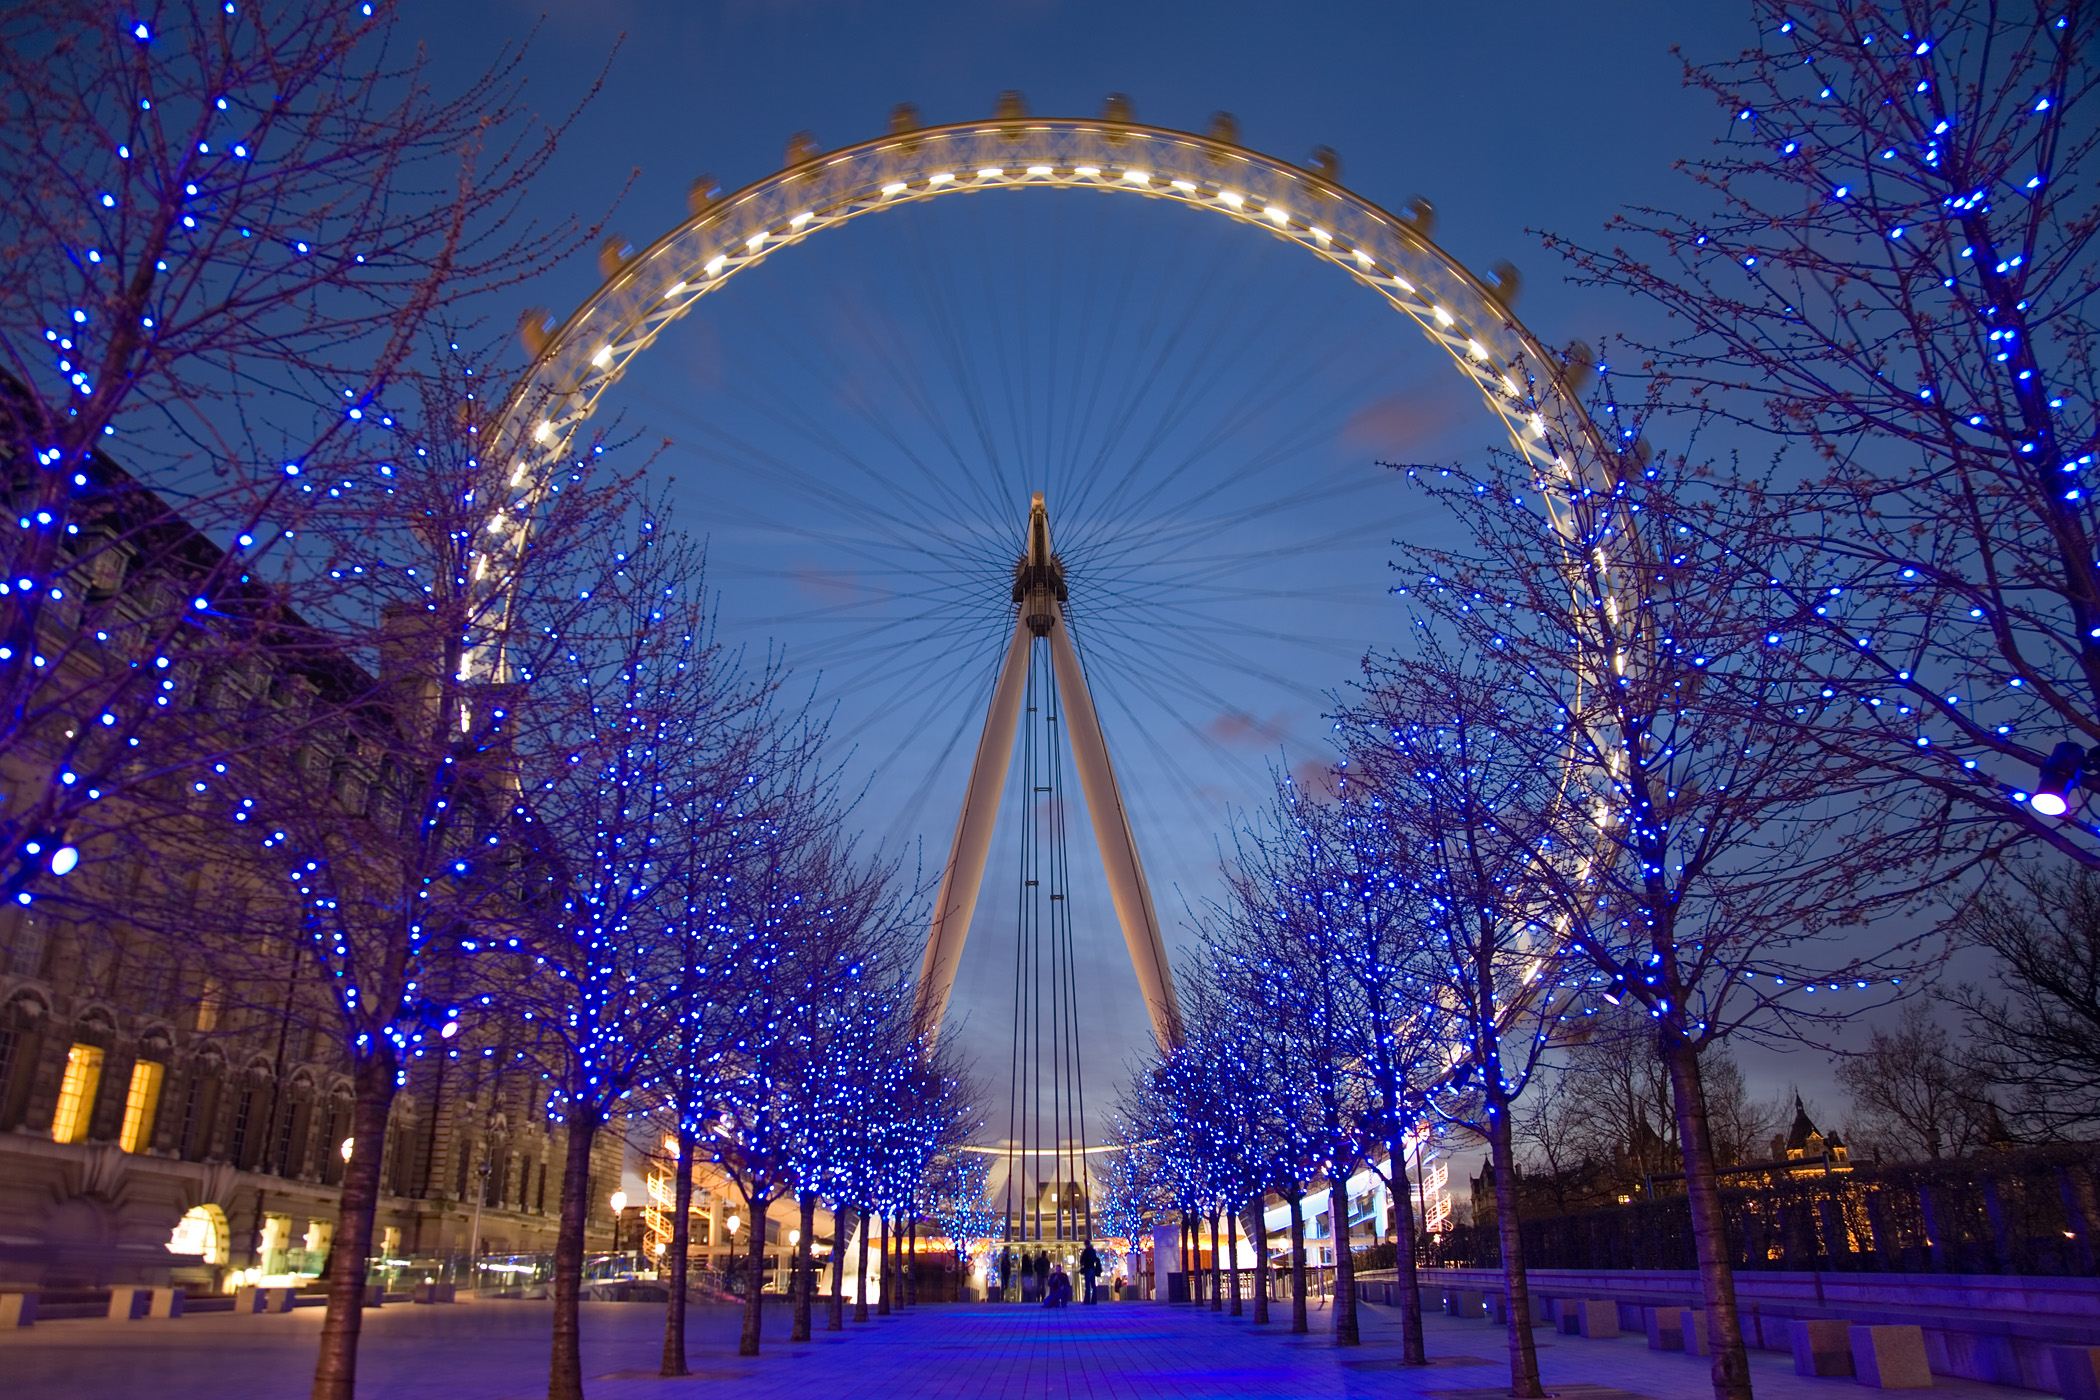 A Day Out in London? 6 Tips to Keep It Cheap